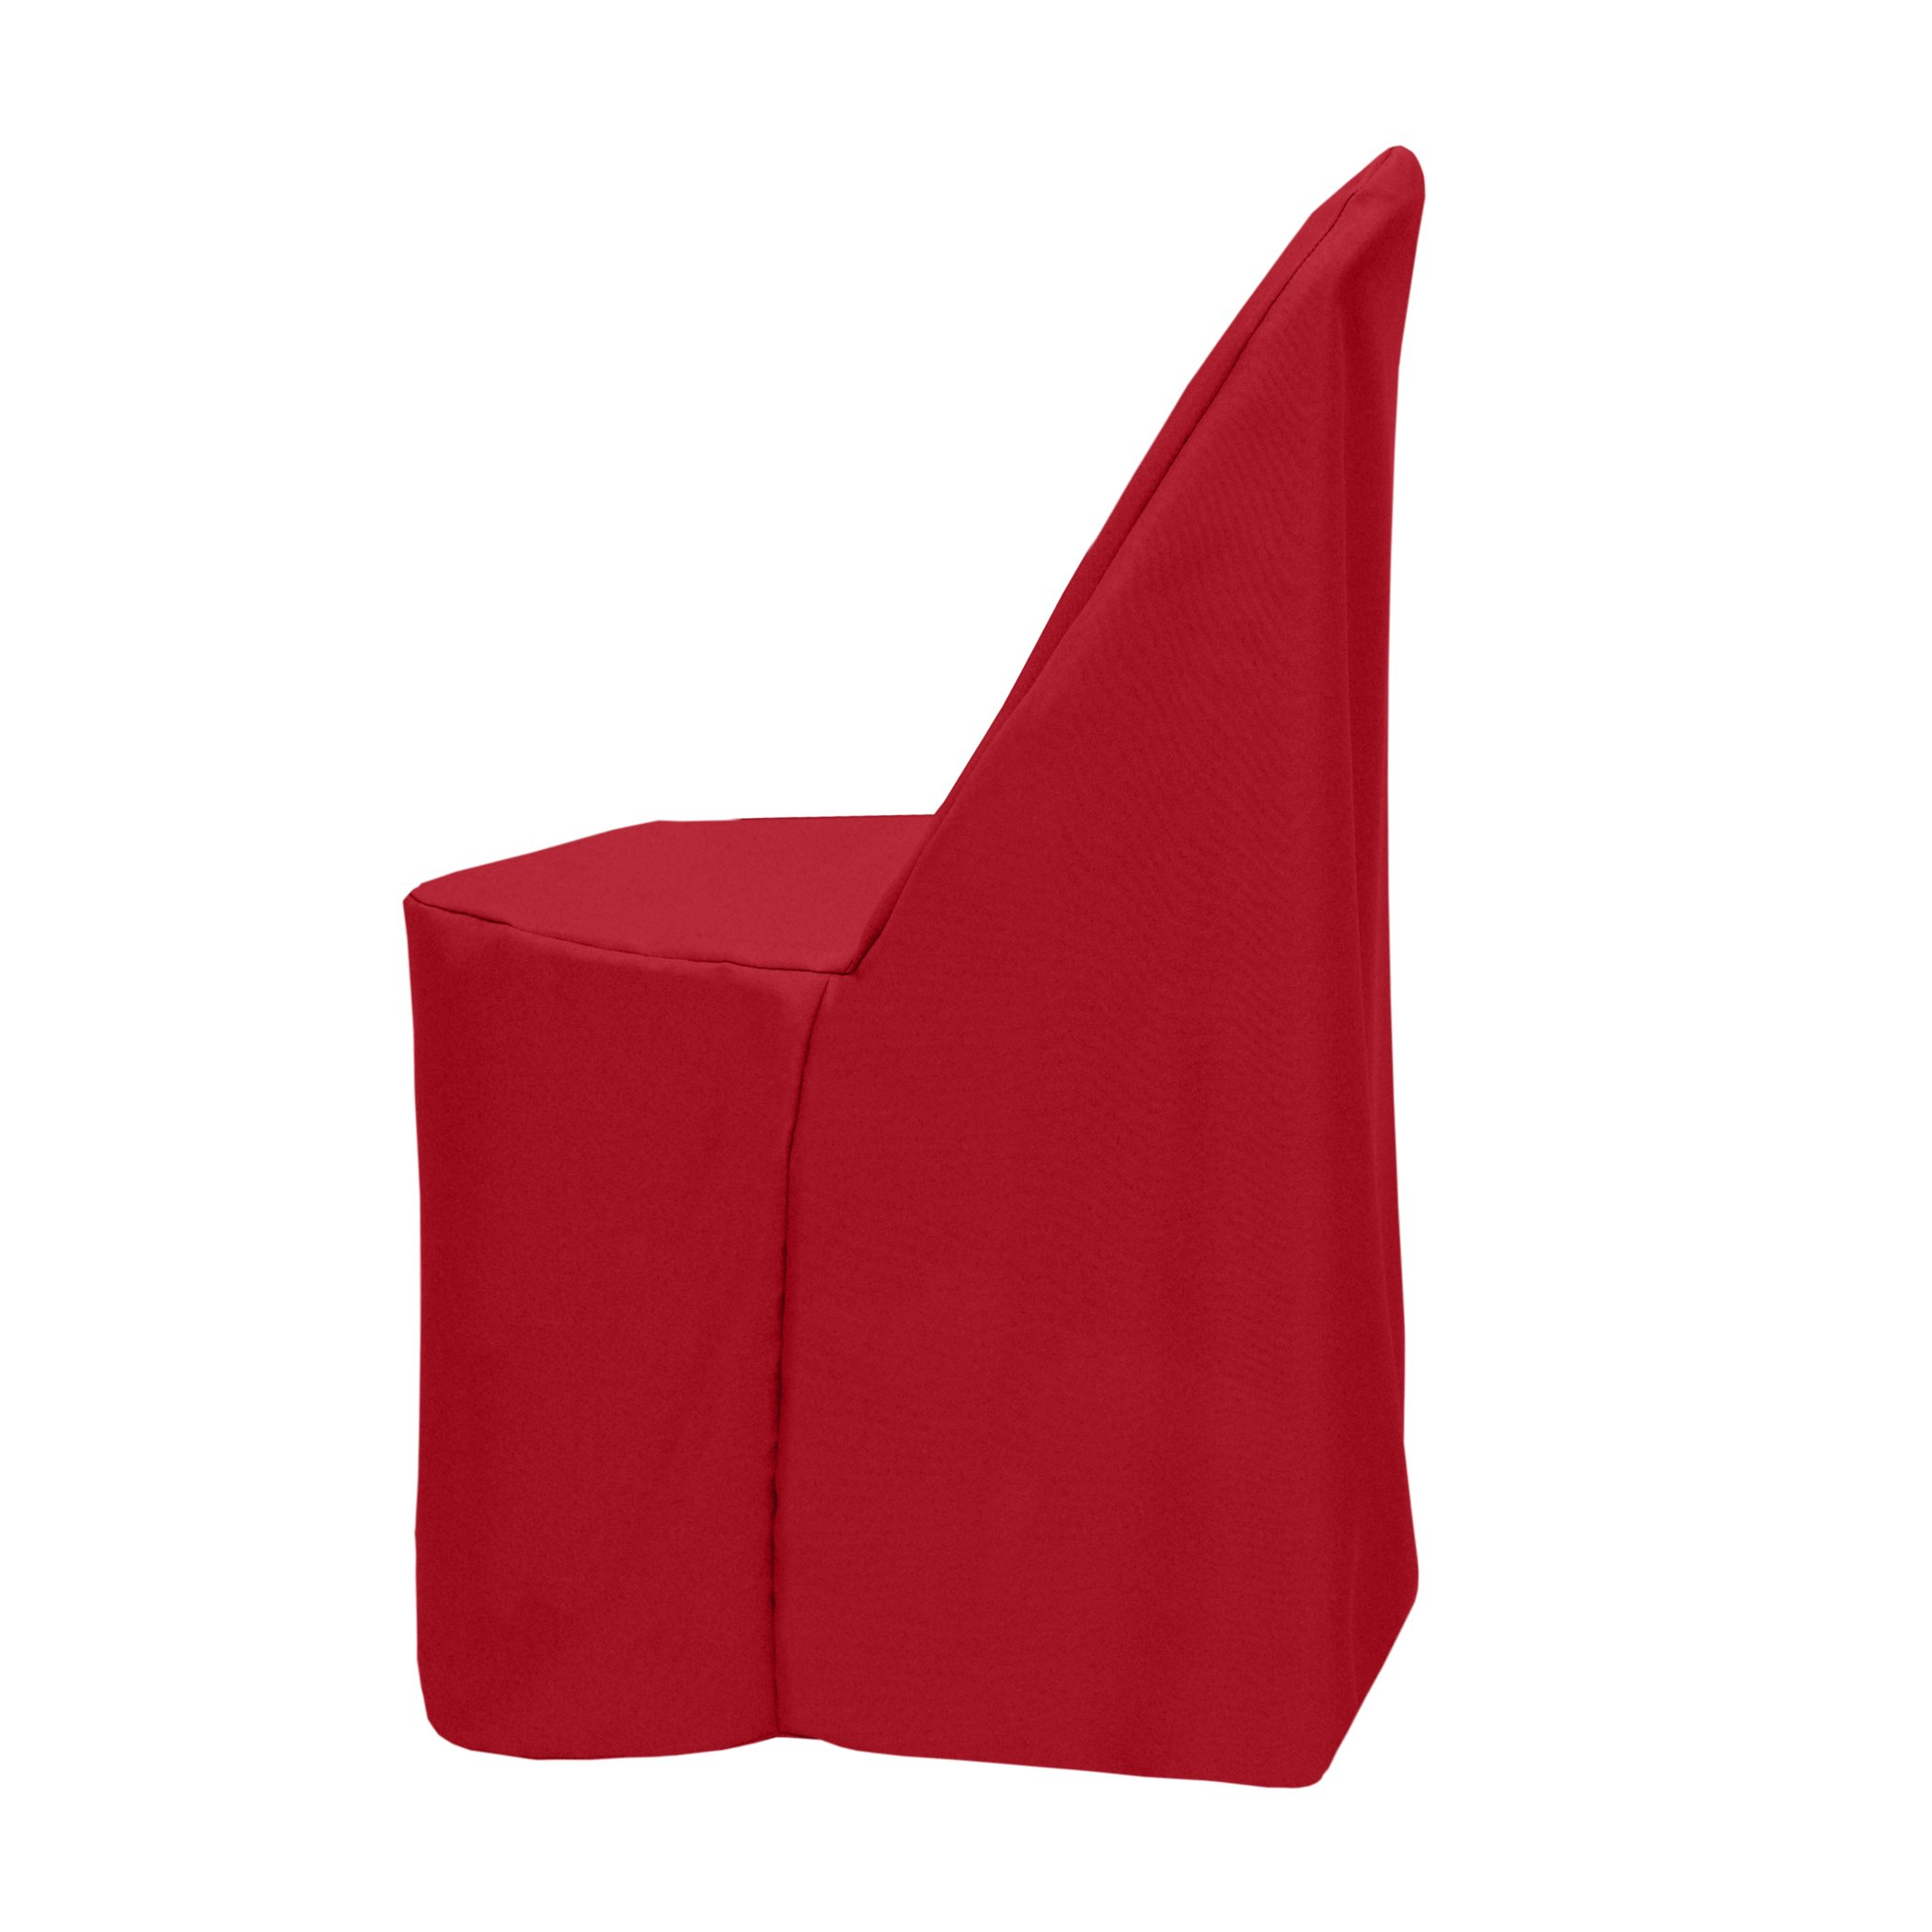 Ultimate Textile (10 Pack) Polyester Folding Chair Cover - for Metal or Plastic Folding Chairs, Holiday Christmas Red by Ultimate Textile